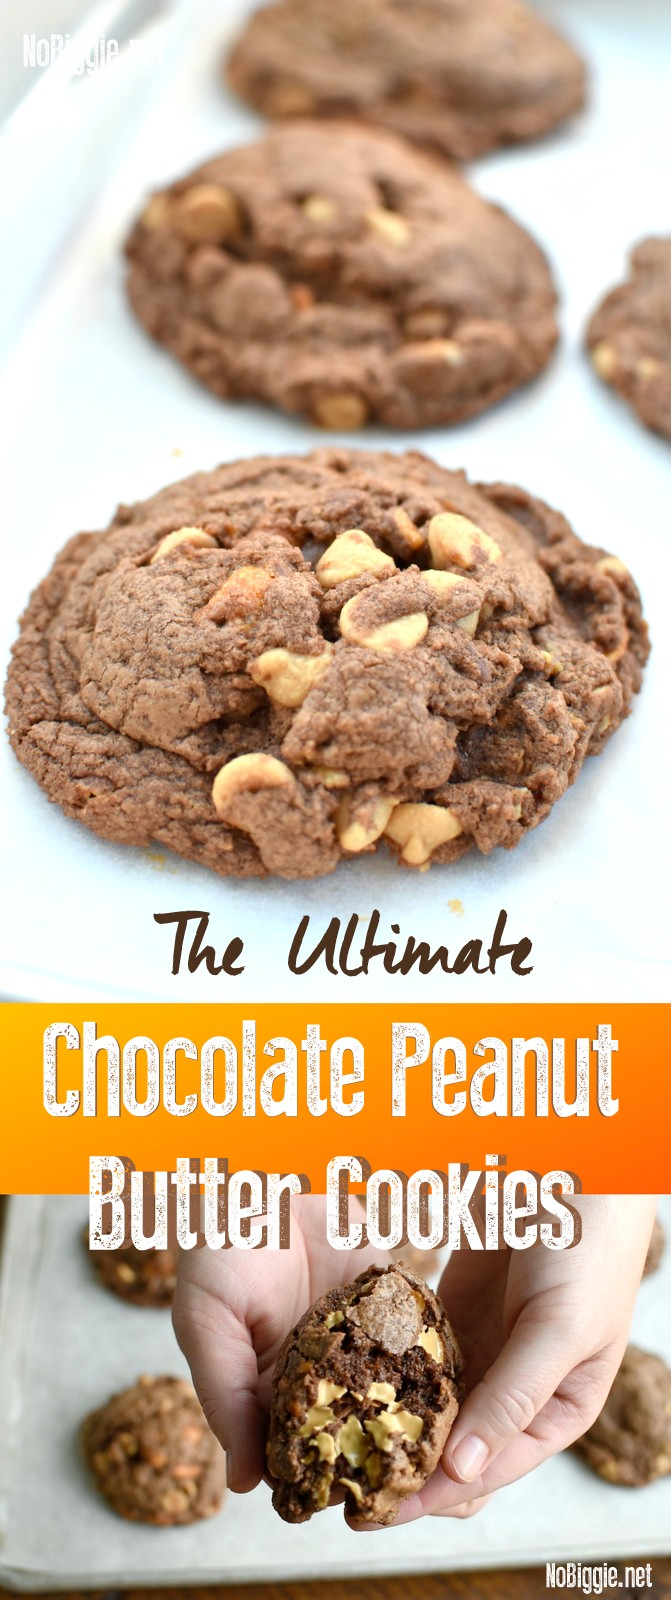 The Ultimate Chocolate Peanut Butter Cookies | NoBiggie.net